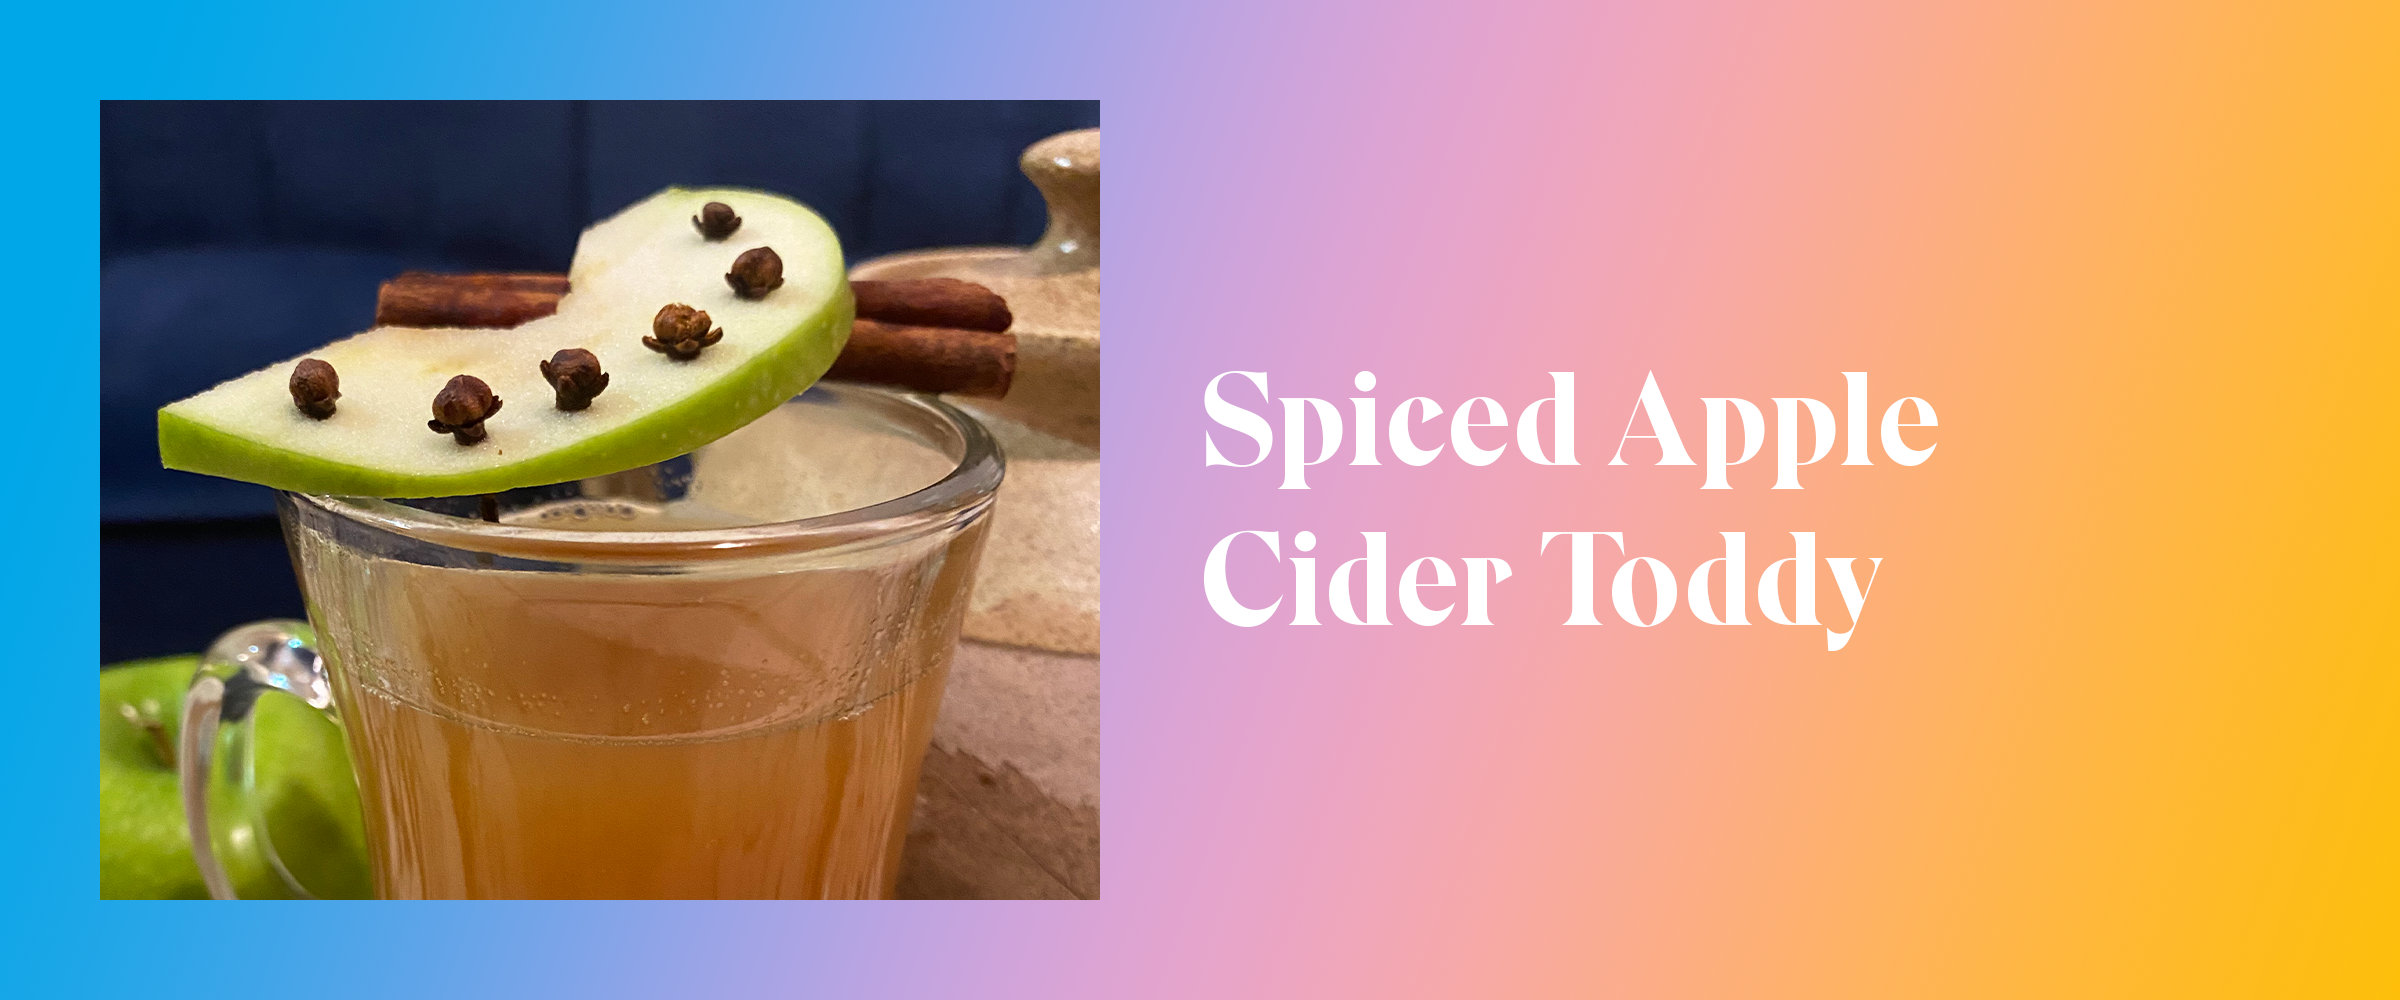 Spiced Apple Cider Toddy